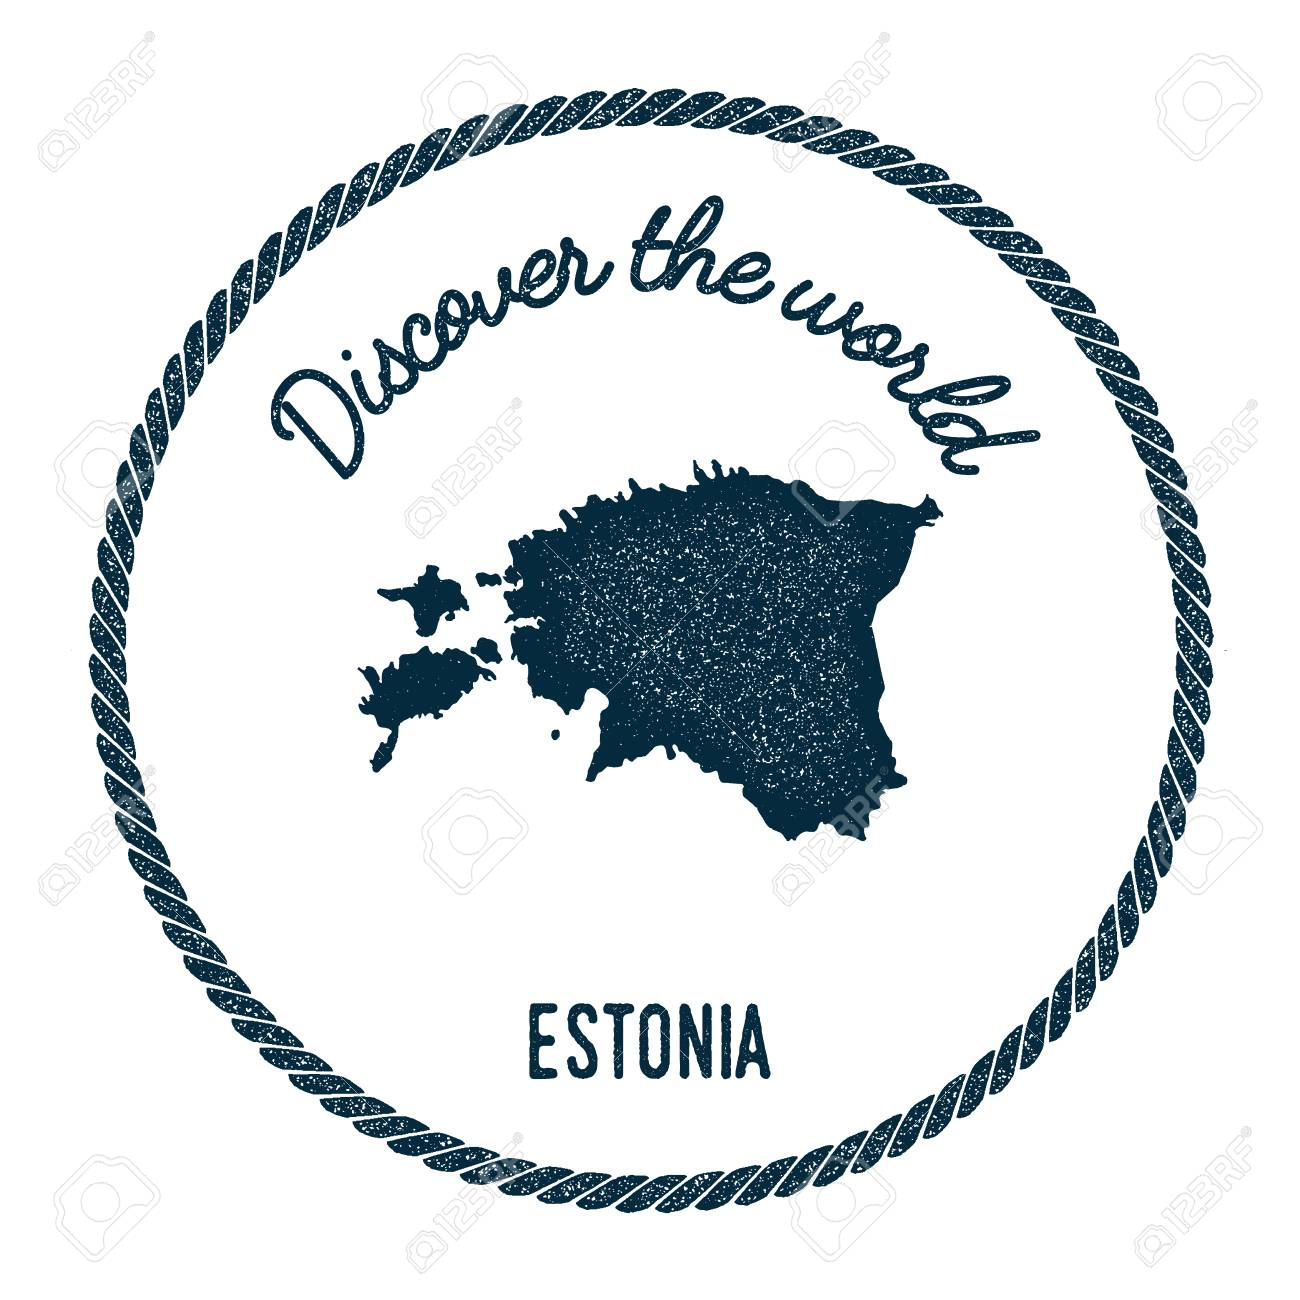 Vintage discover the world rubber stamp with estonia map hipster vector vintage discover the world rubber stamp with estonia map hipster style nautical postage stamp with round rope border vector illustration gumiabroncs Choice Image